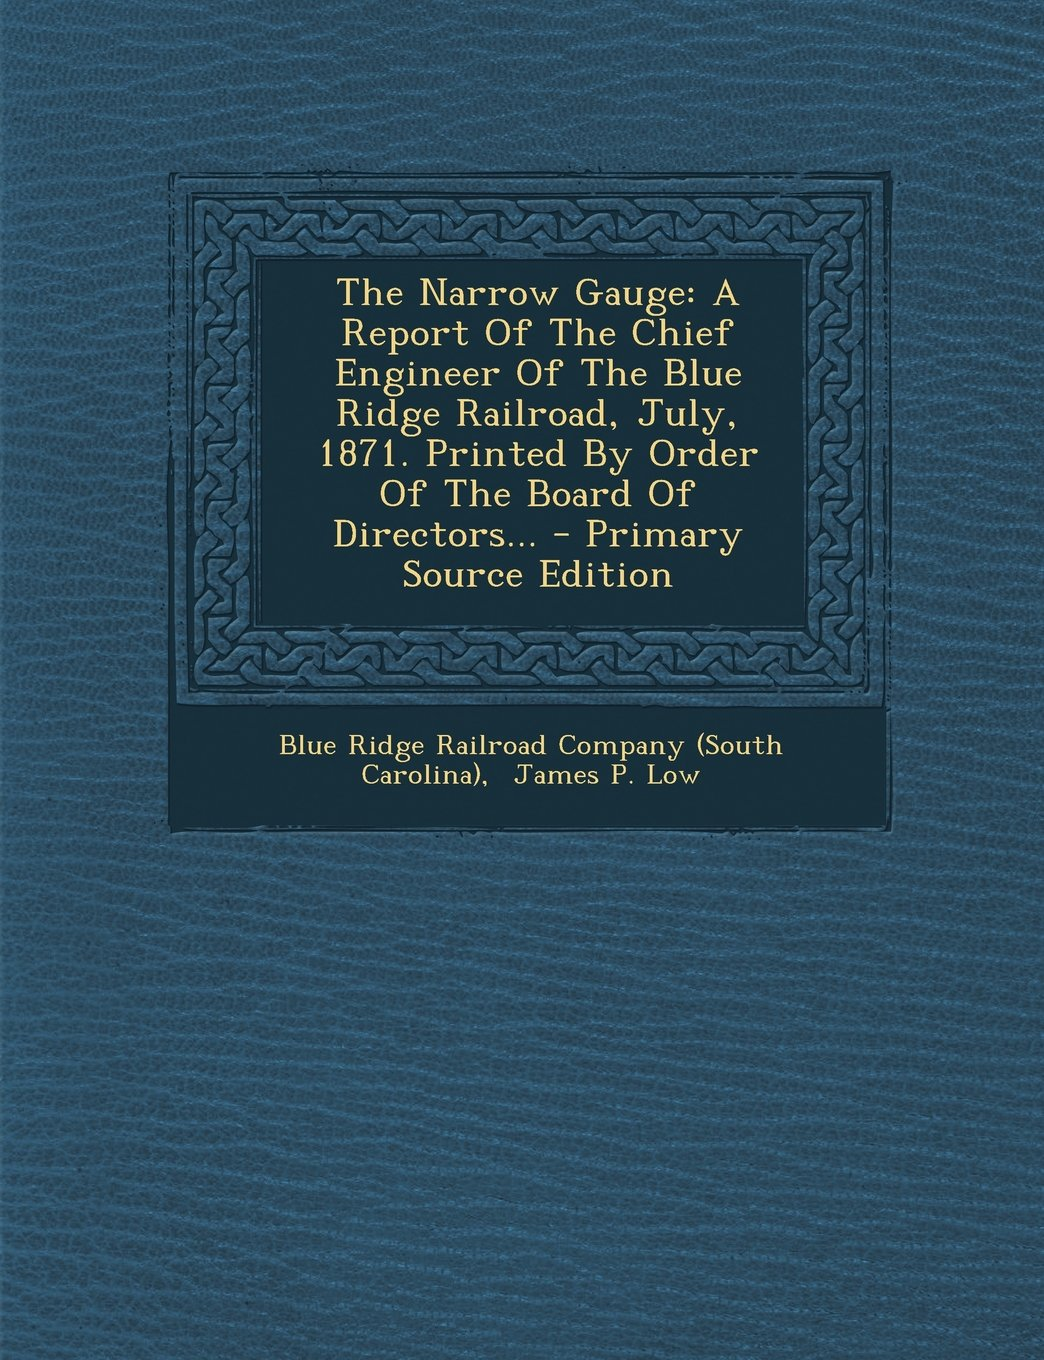 Download The Narrow Gauge: A Report of the Chief Engineer of the Blue Ridge Railroad, July, 1871. Printed by Order of the Board of Directors... - pdf